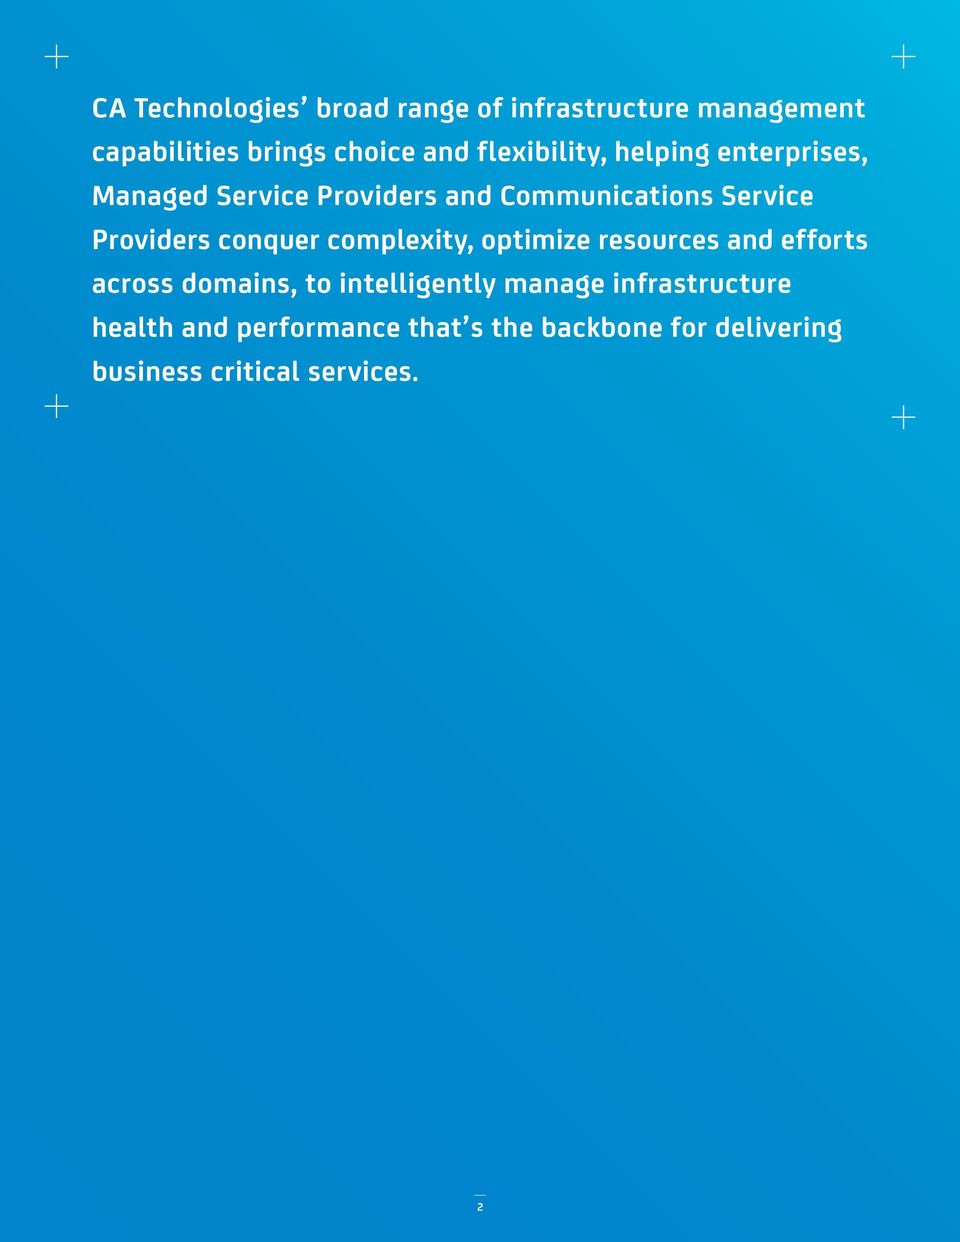 Providers conquer complexity, optimize resources and efforts across domains, to intelligently